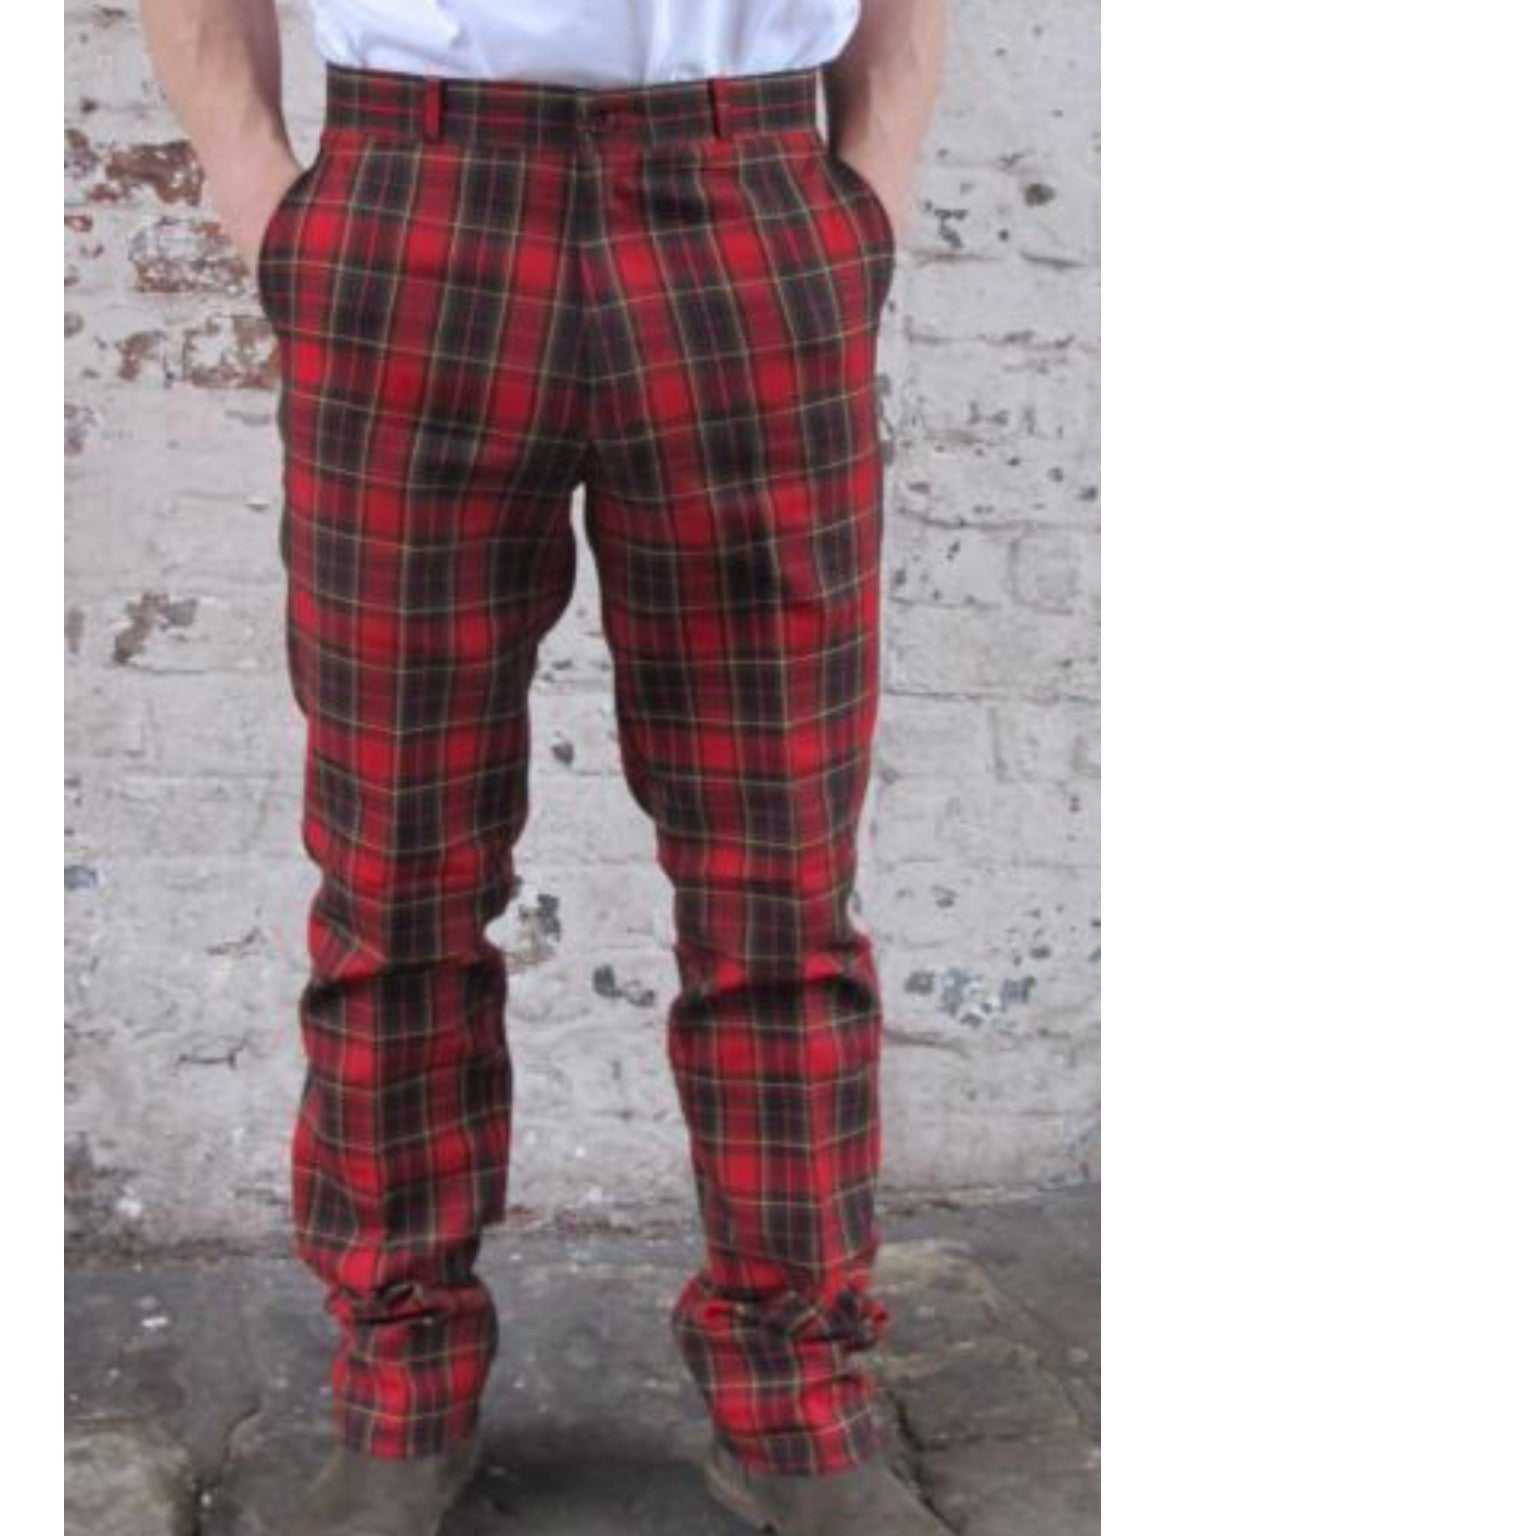 Fabulous Mens Sta Prest Trousers Red Tartan 2 - Kiss Kiss Heart EQ77 dc188fe7f